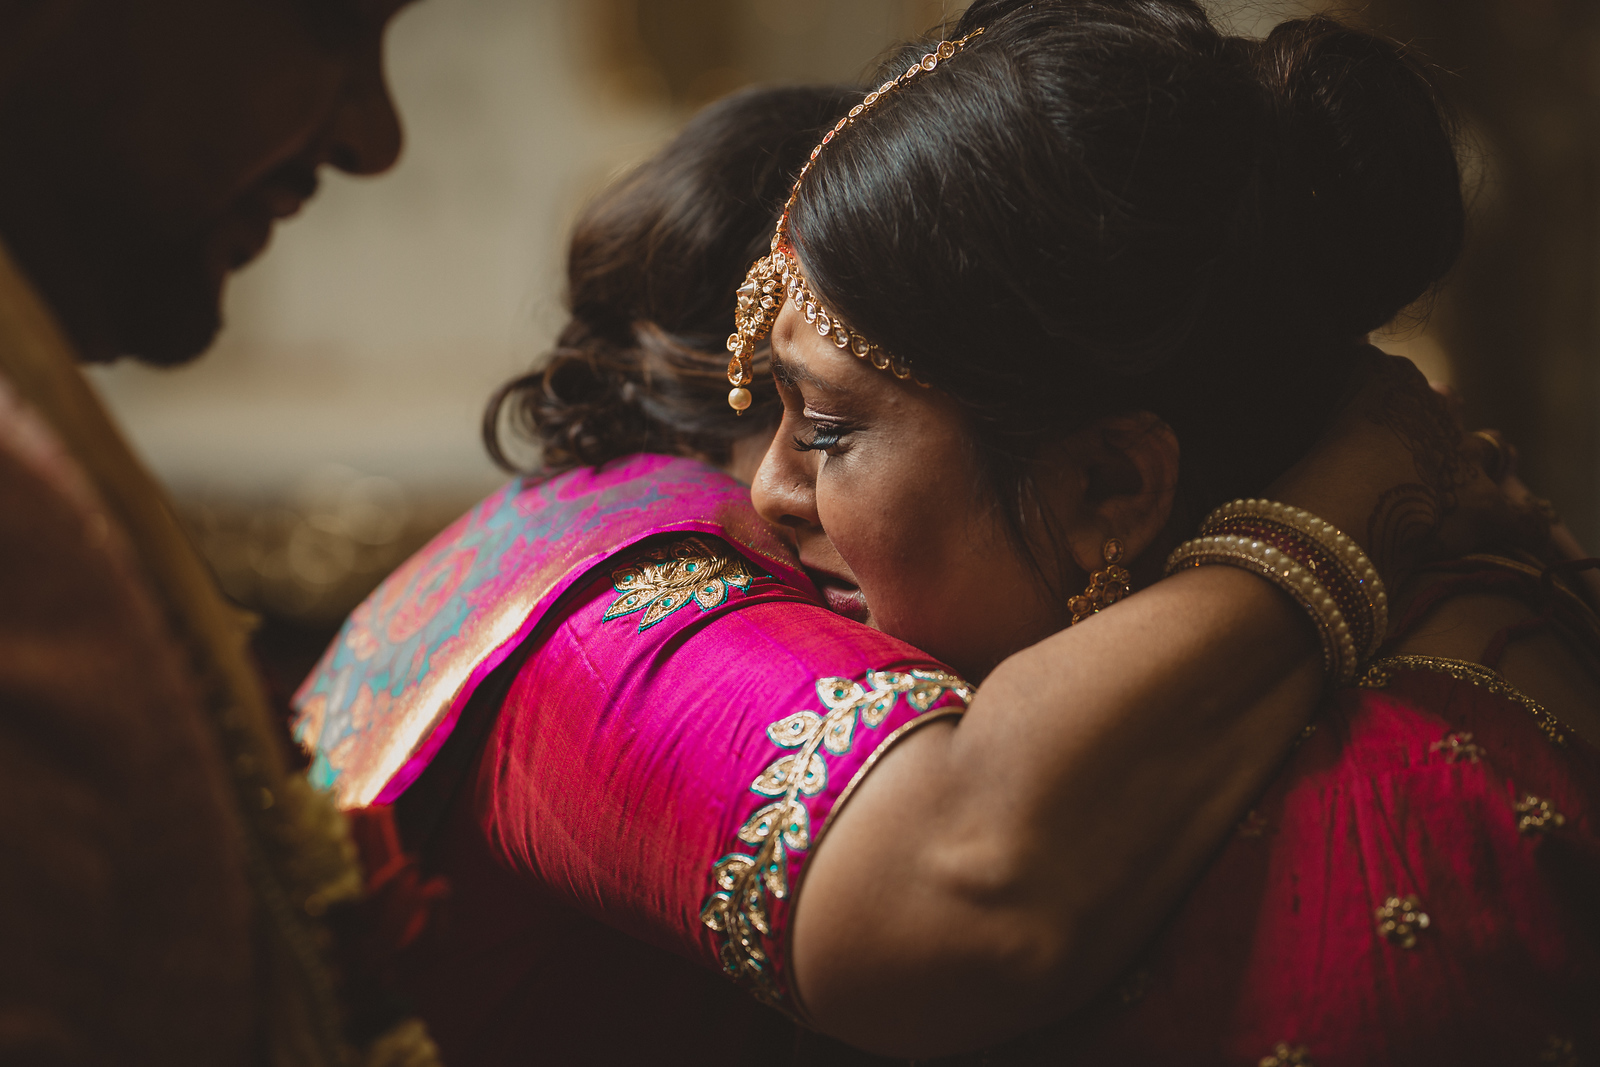 Hindu bride shares emotional moment with family